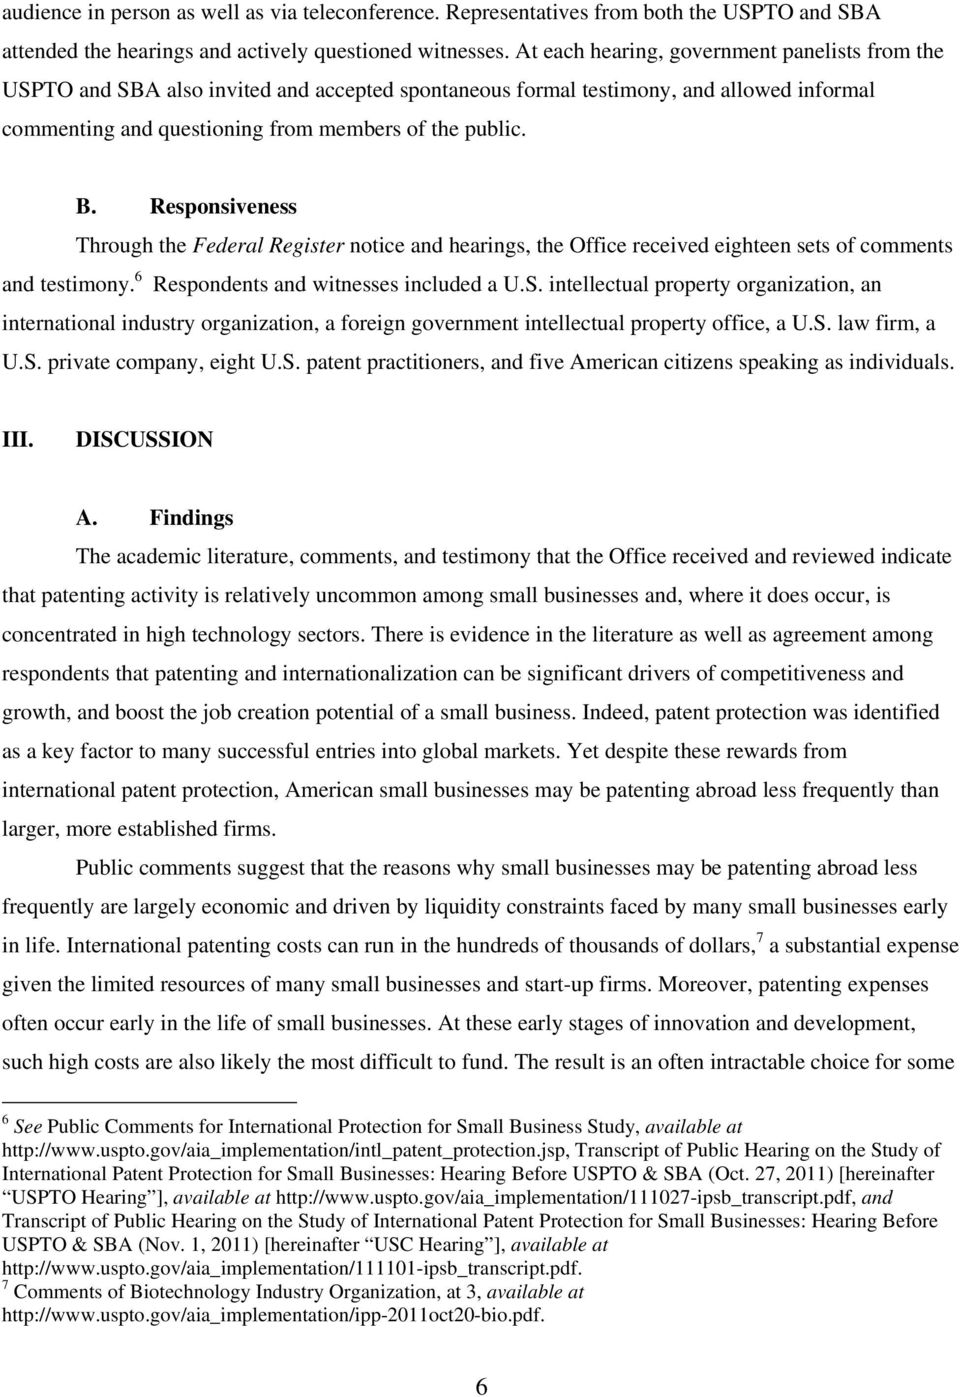 Responsiveness Through the Federal Register notice and hearings, the Office received eighteen sets of comments and testimony. 6 Respondents and witnesses included a U.S.